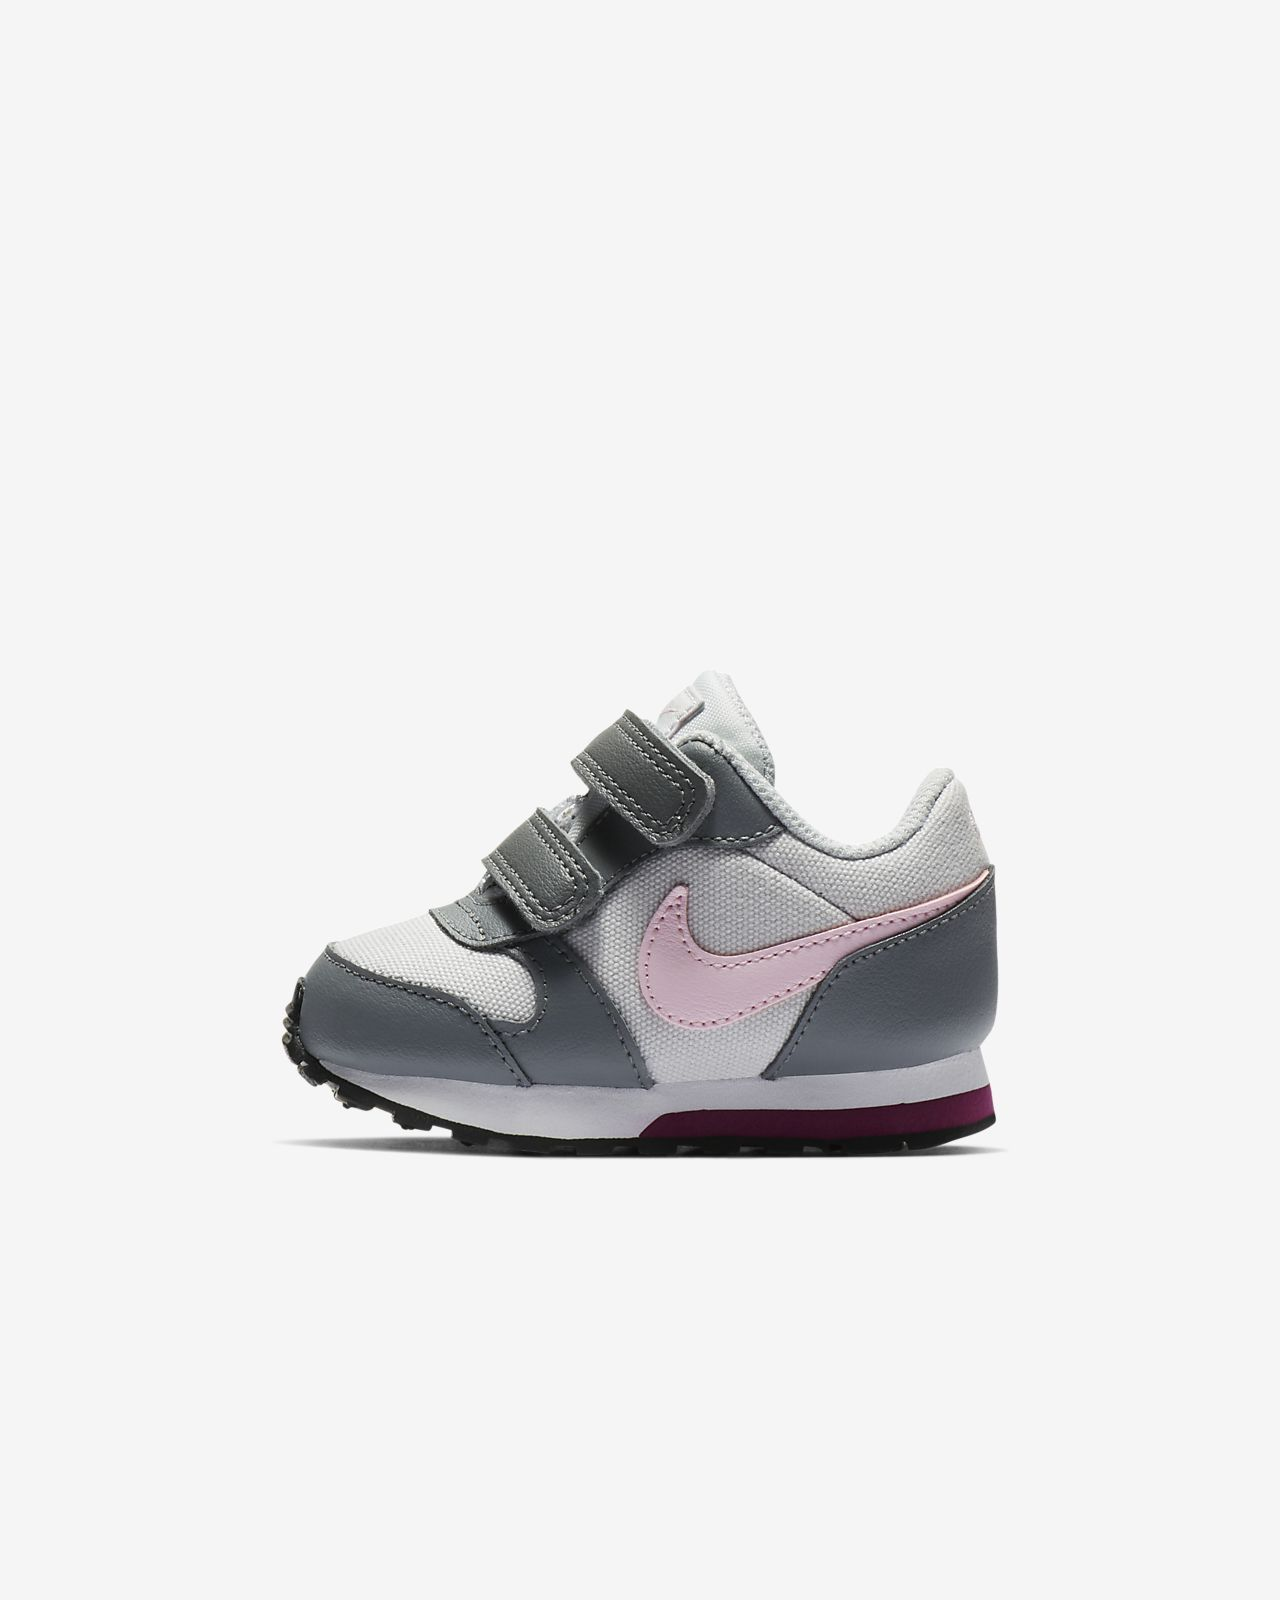 a0d23e61323 Nike MD Runner 2 Baby   Toddler Shoe. Nike.com AU